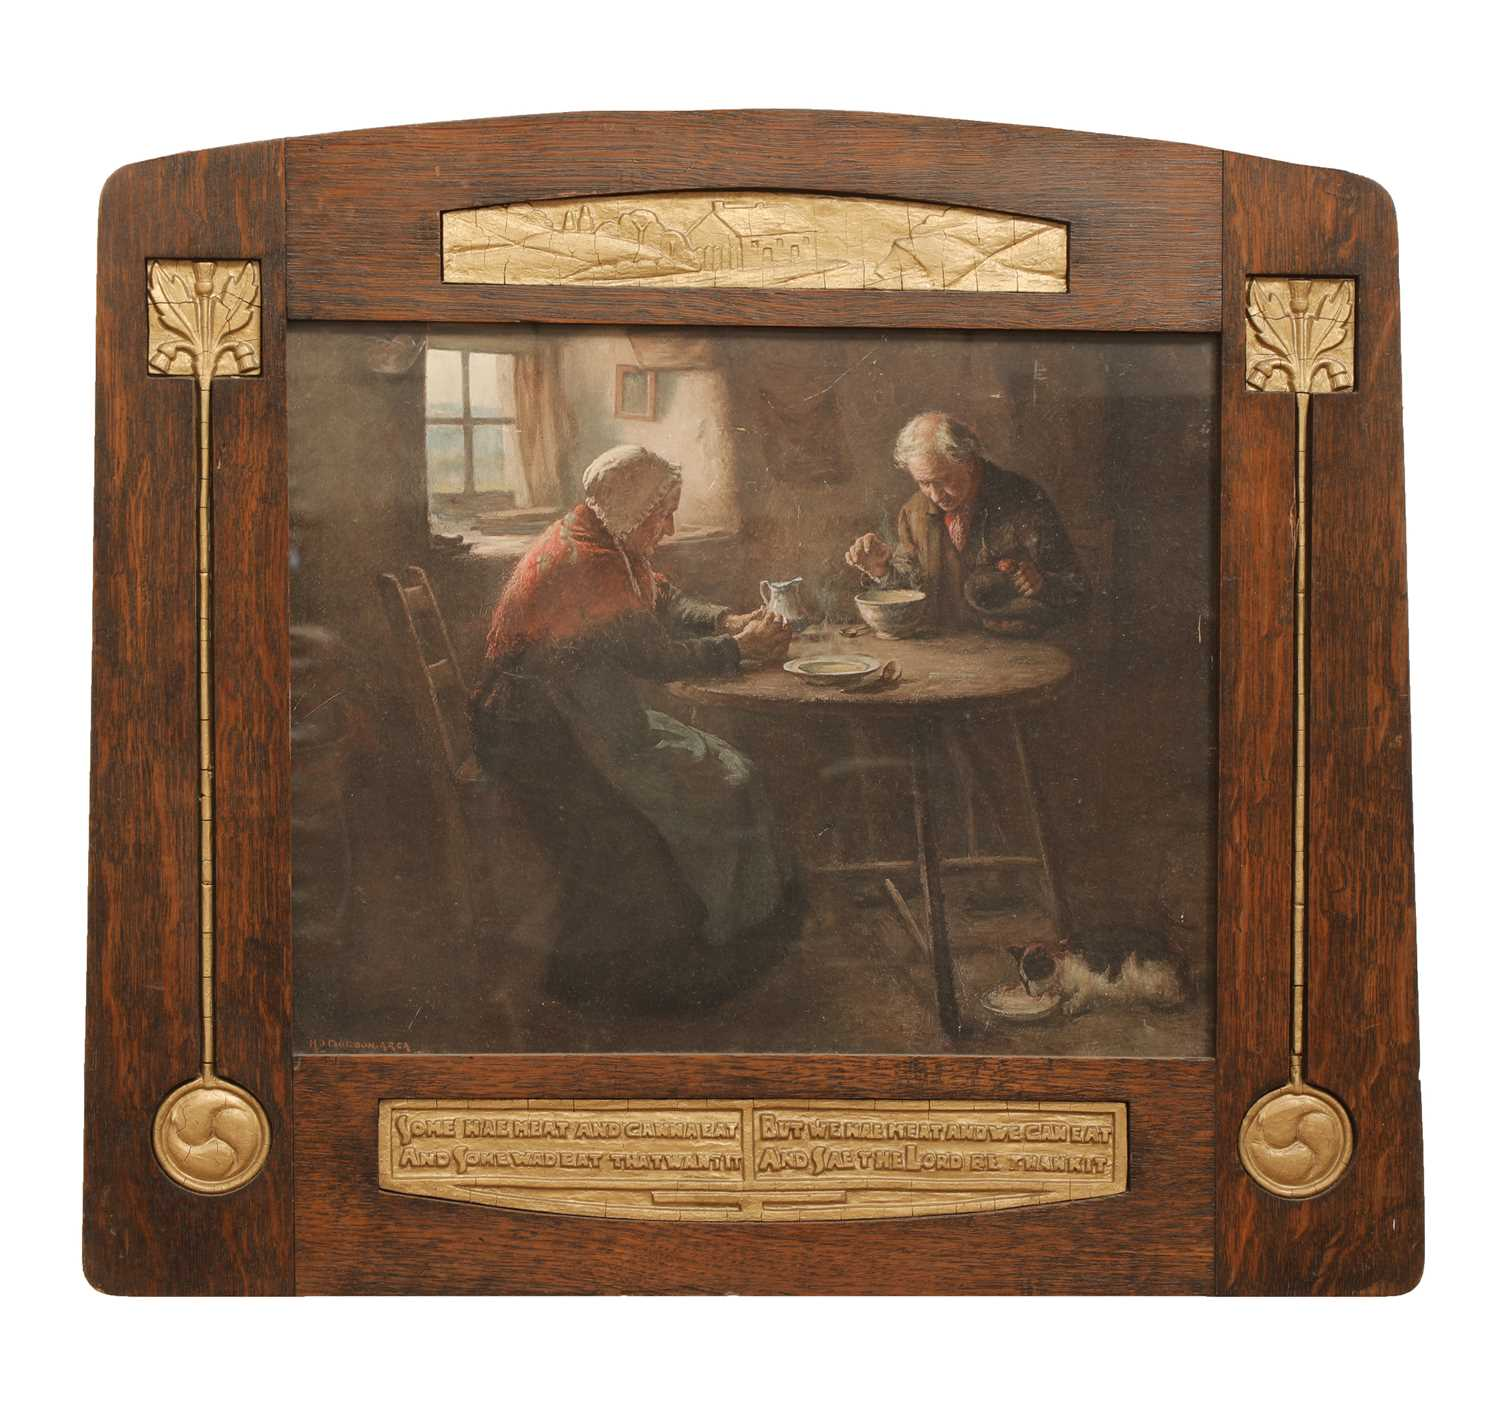 Lot 85 - A Scottish Arts and Crafts oak and gesso frame